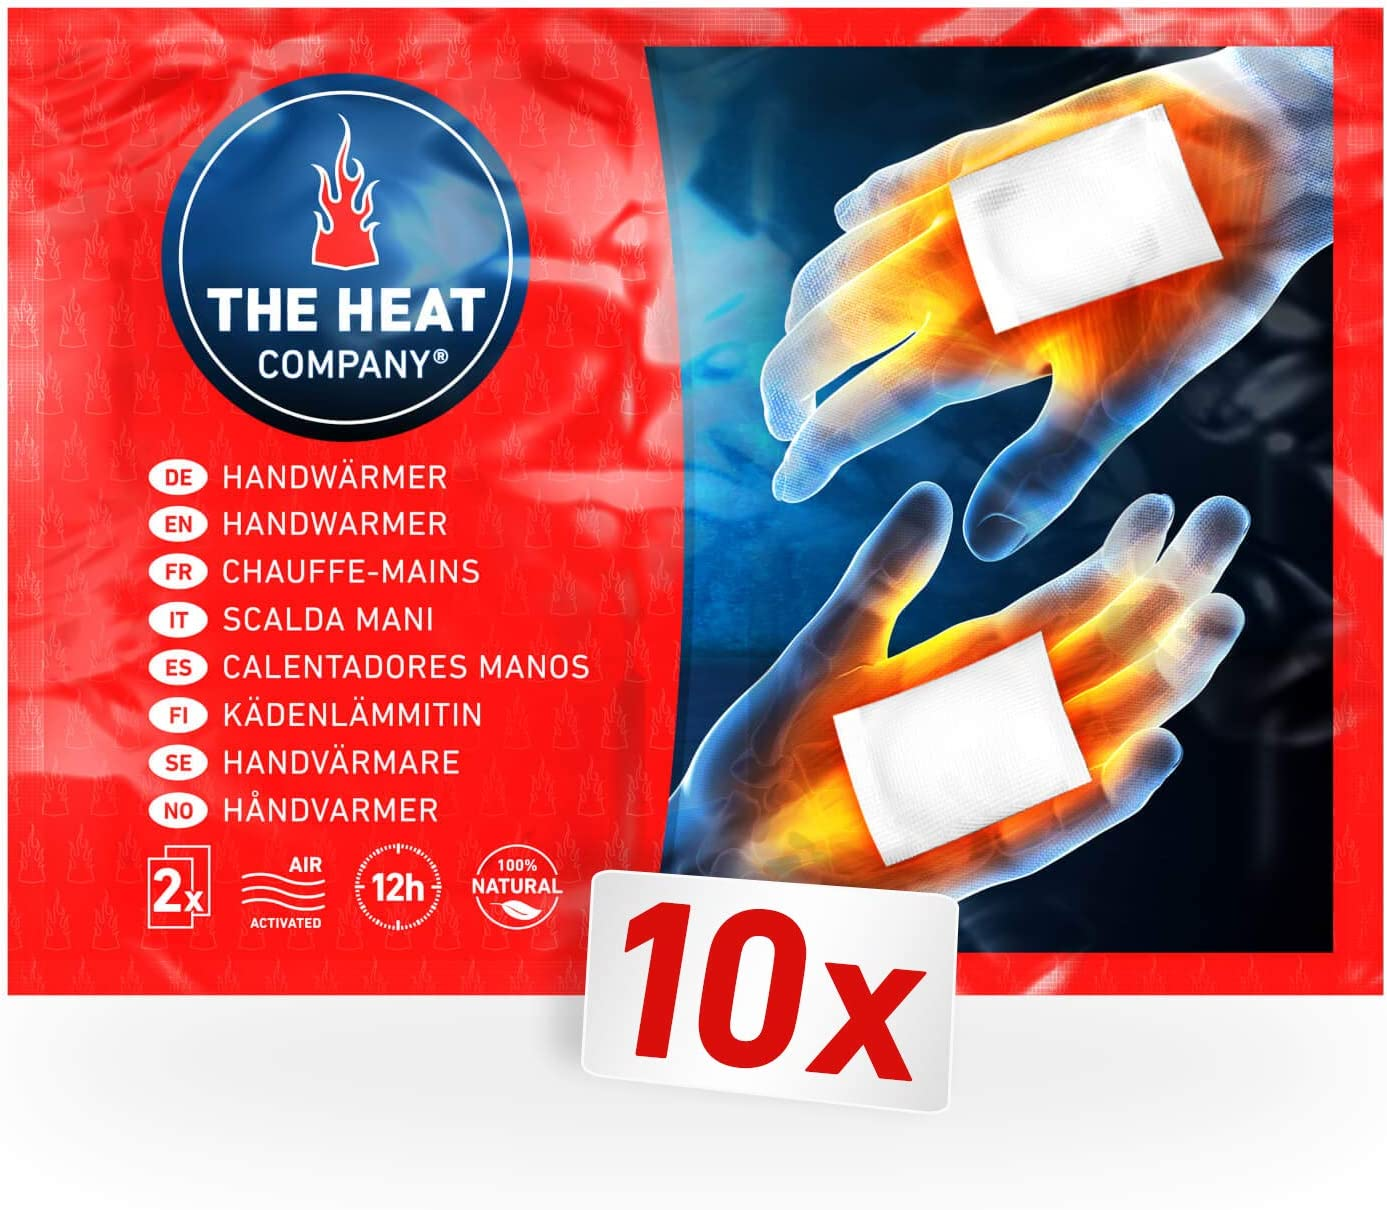 Packet of disposable hand warmers.